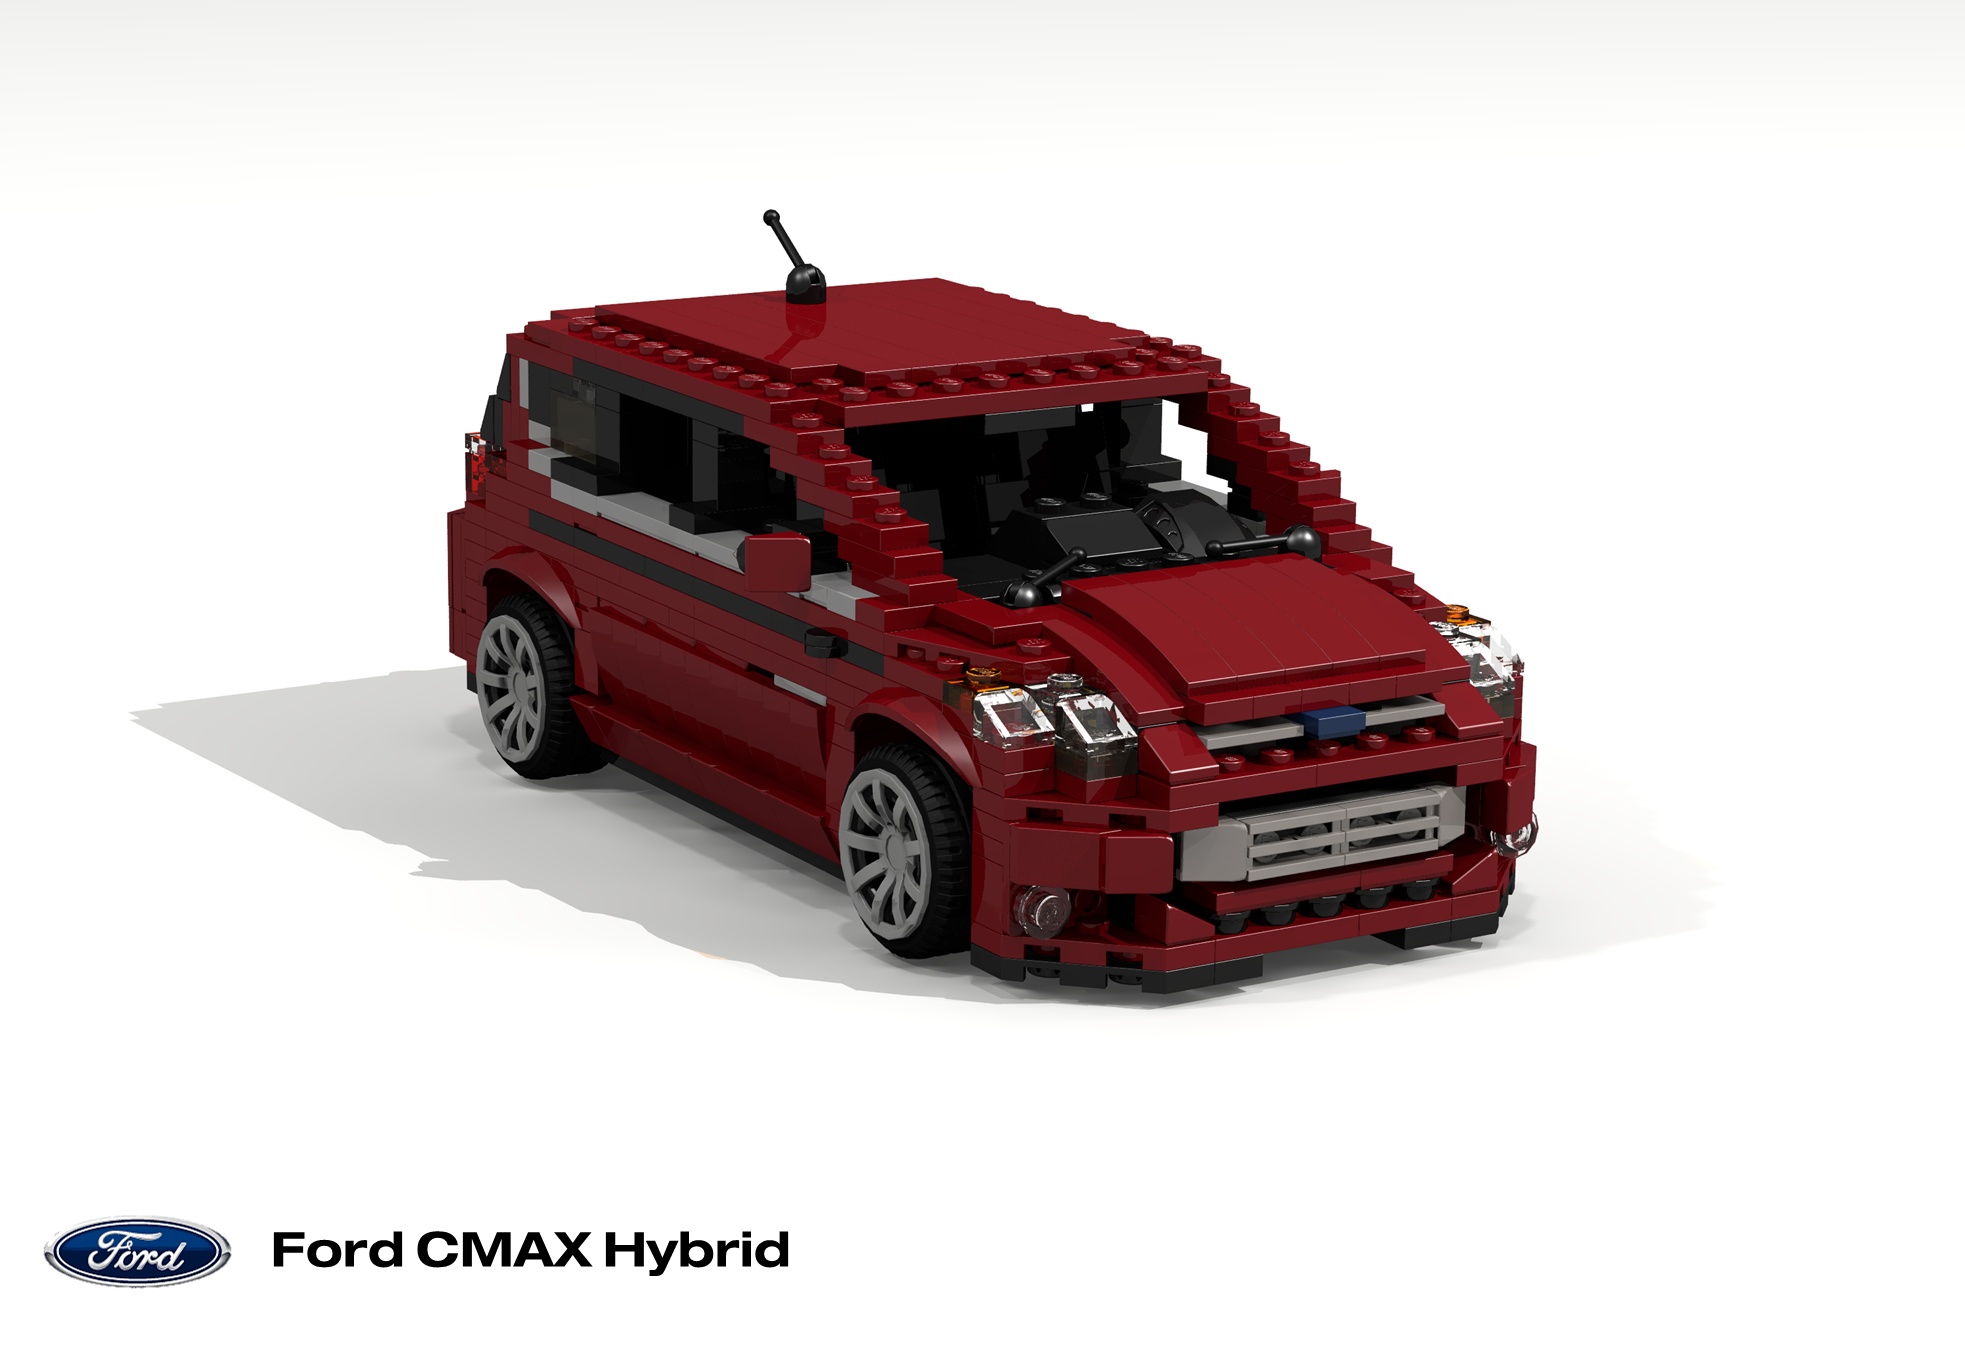 2013_ford_cmax_hybrid_c344.png